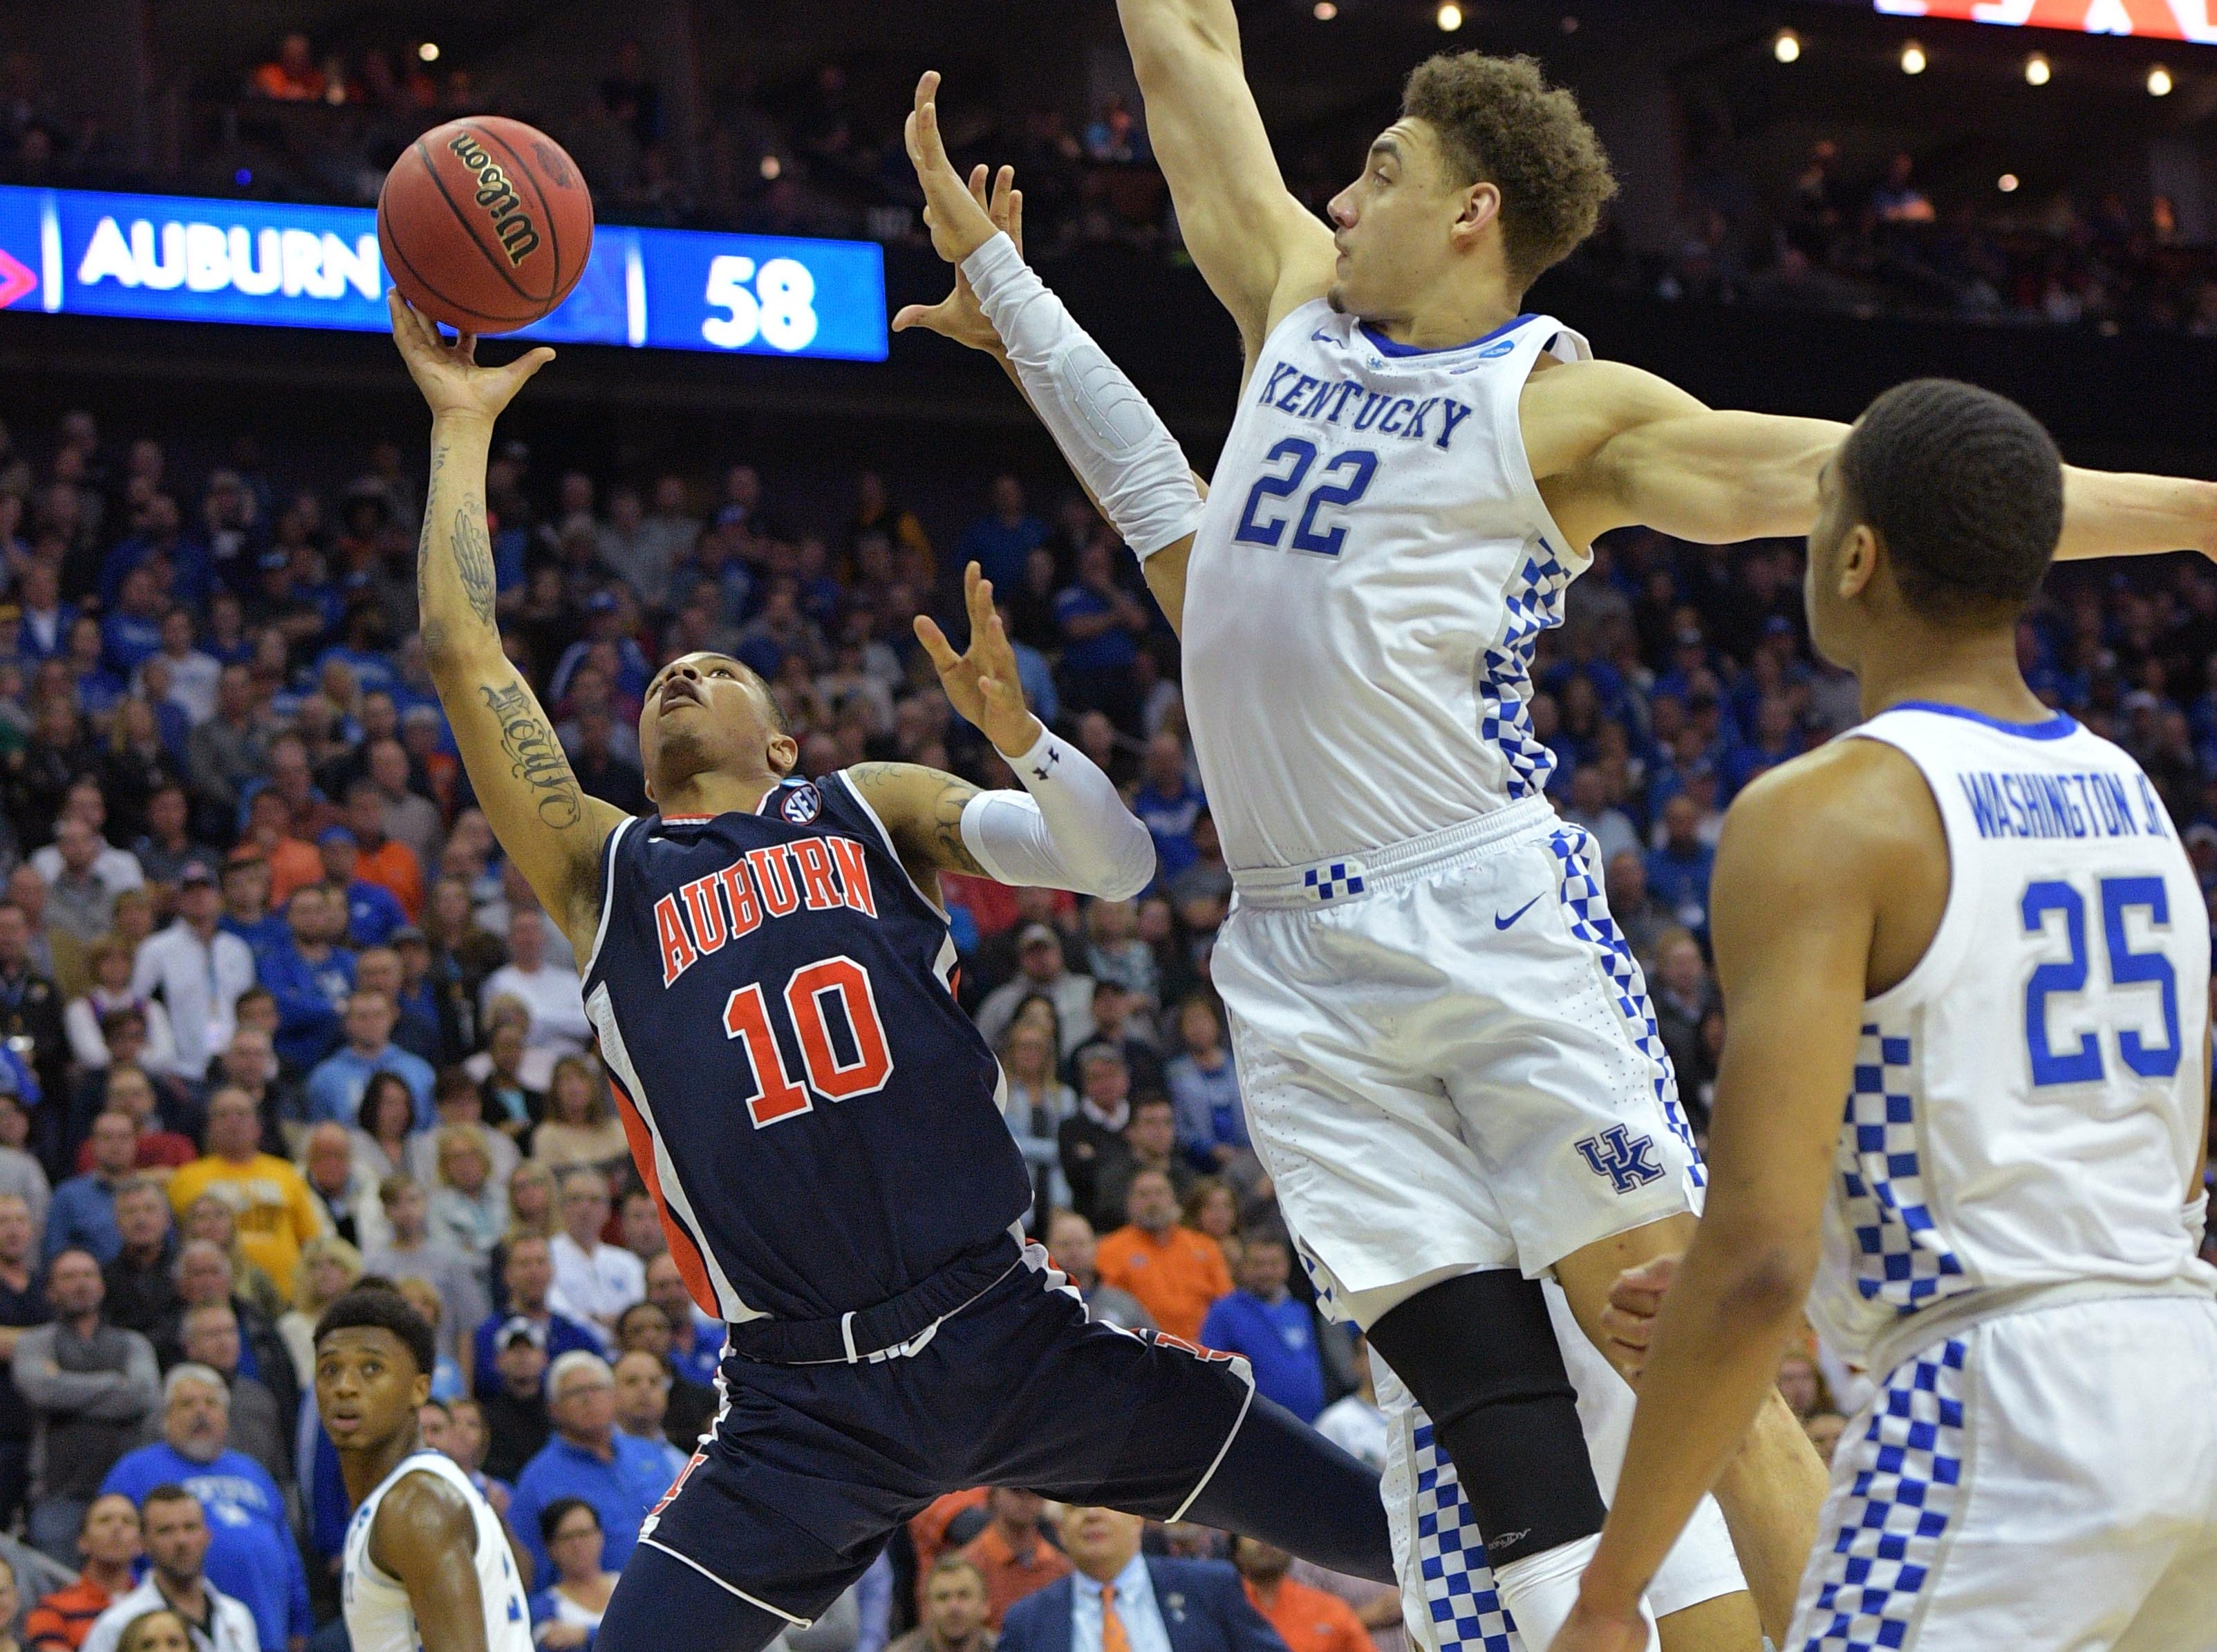 Mar 31, 2019; Kansas City, MO, United States; Auburn Tigers guard Samir Doughty (10) shoots against Kentucky Wildcats forward Reid Travis (22) during the second half in the championship game of the midwest regional of the 2019 NCAA Tournament at Sprint Center. Mandatory Credit: Denny Medley-USA TODAY Sports